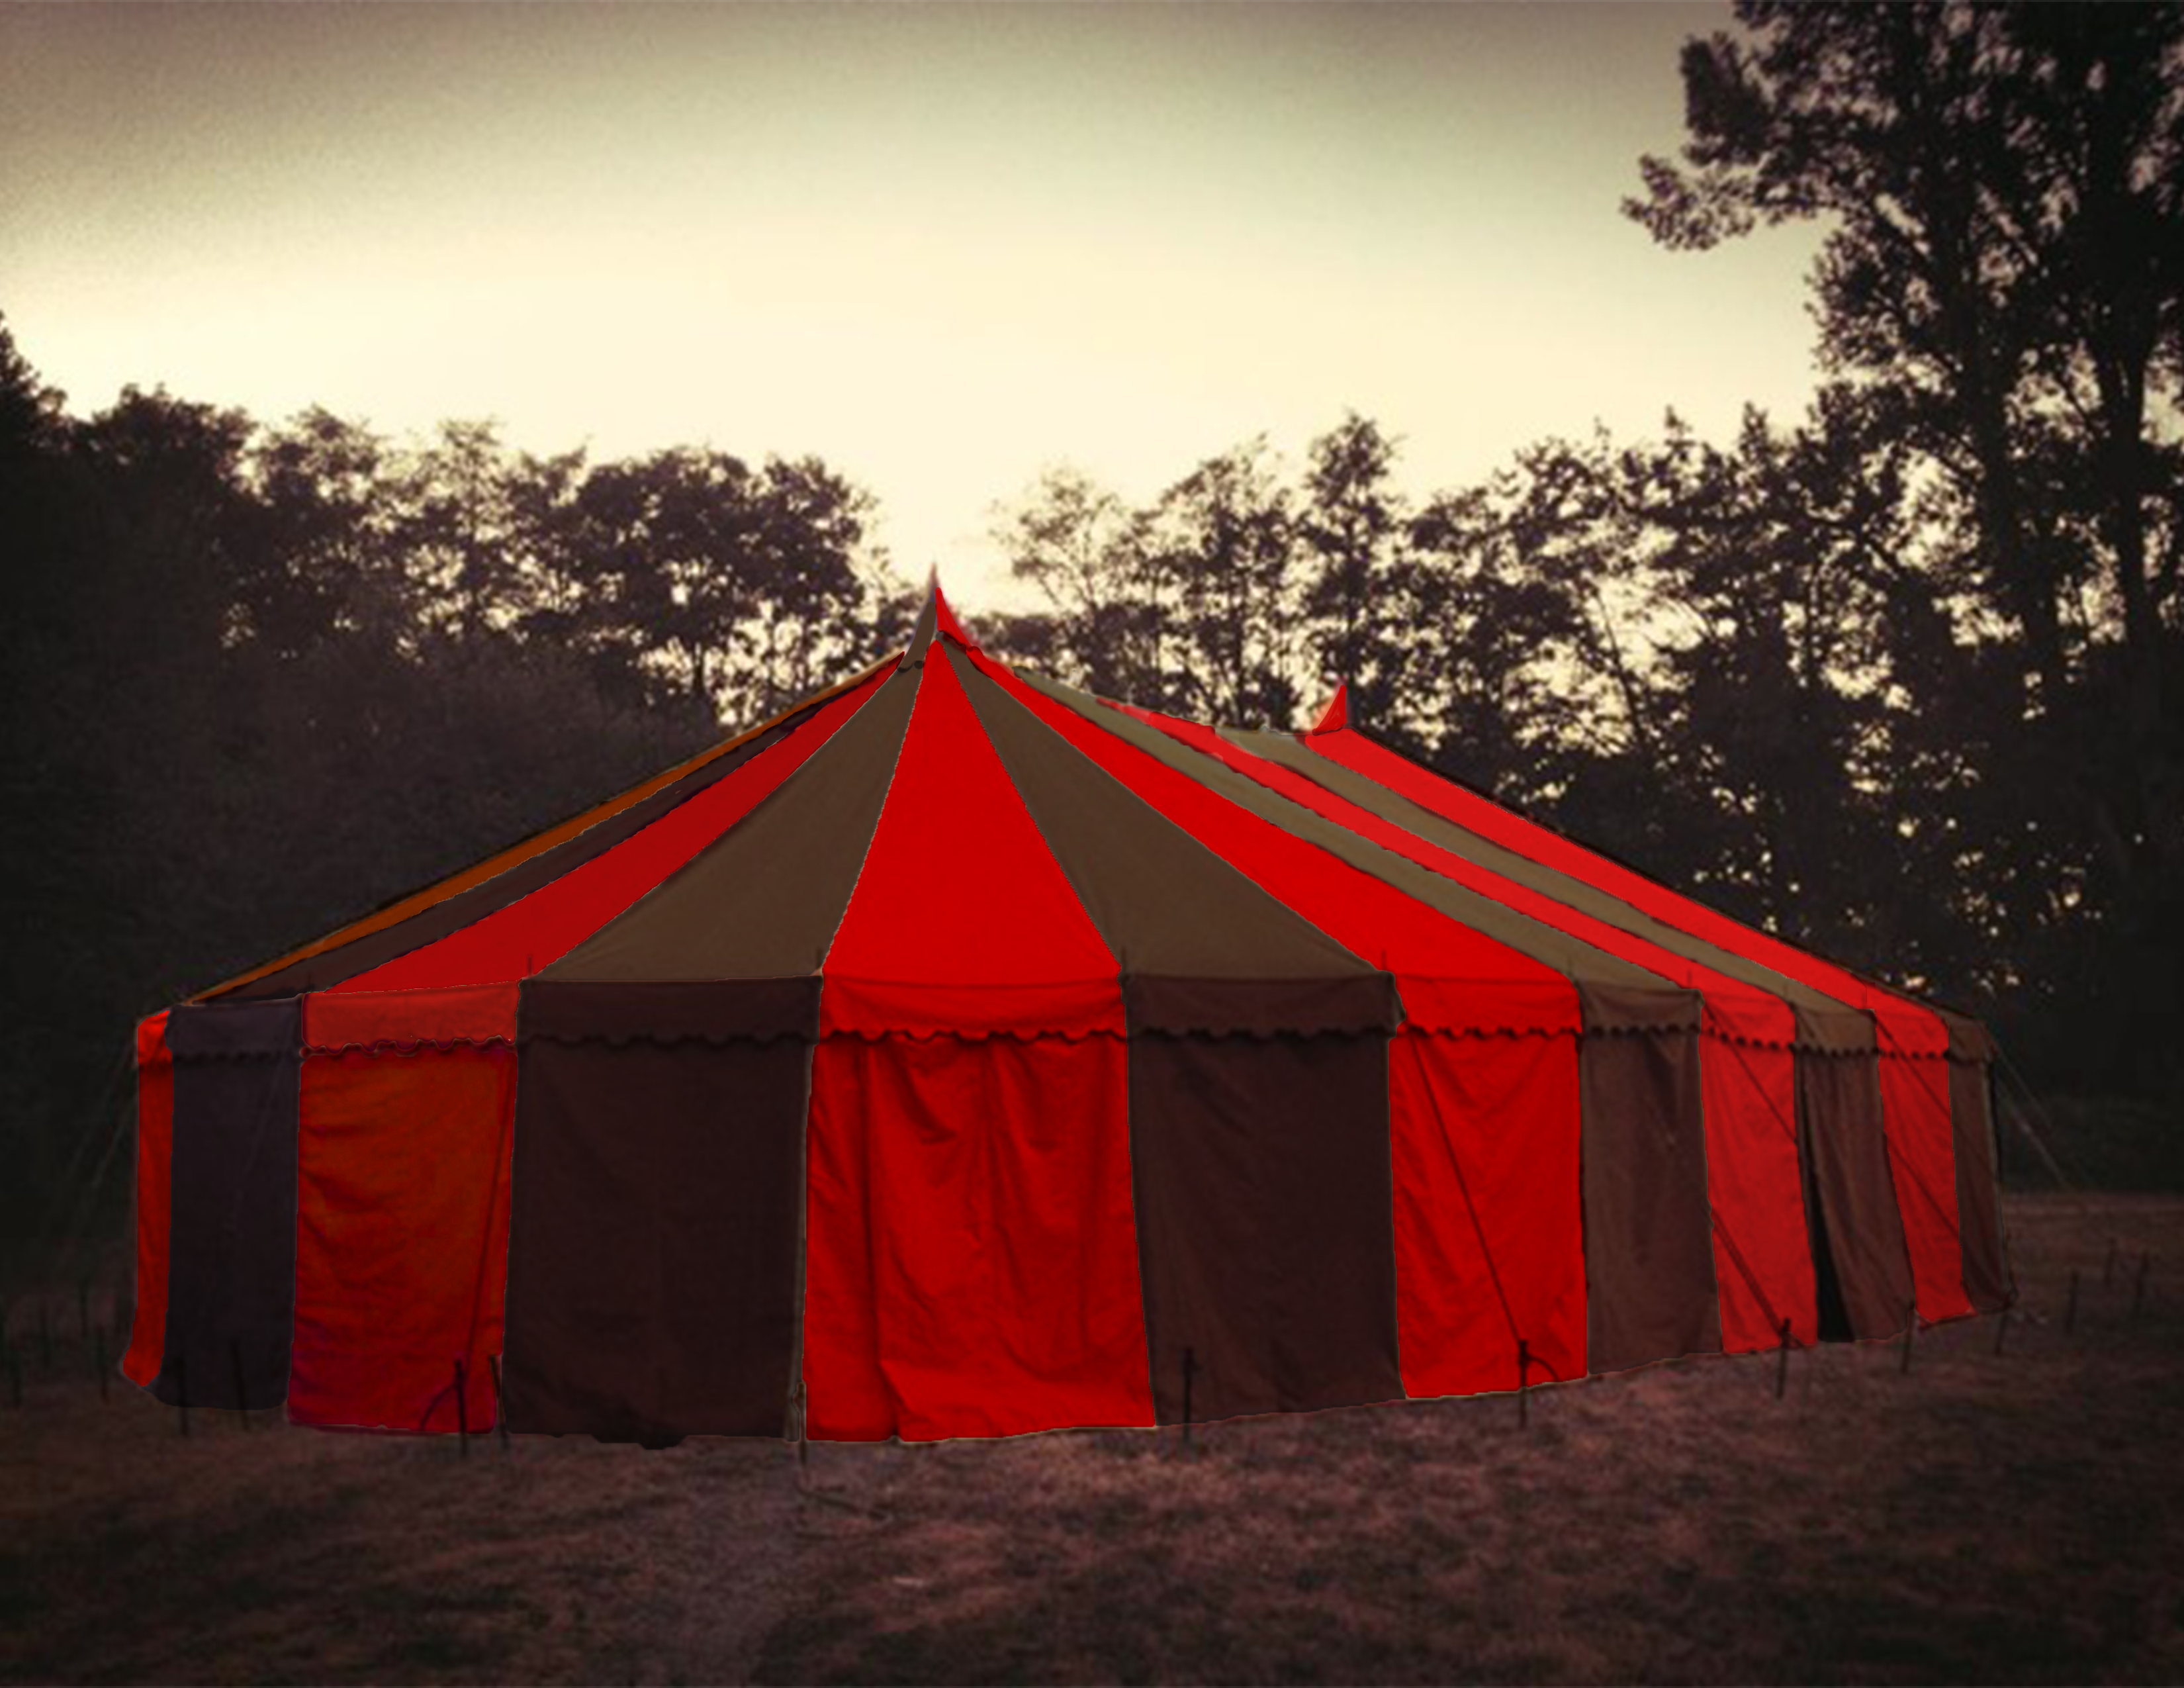 Black and Red Circus Tent